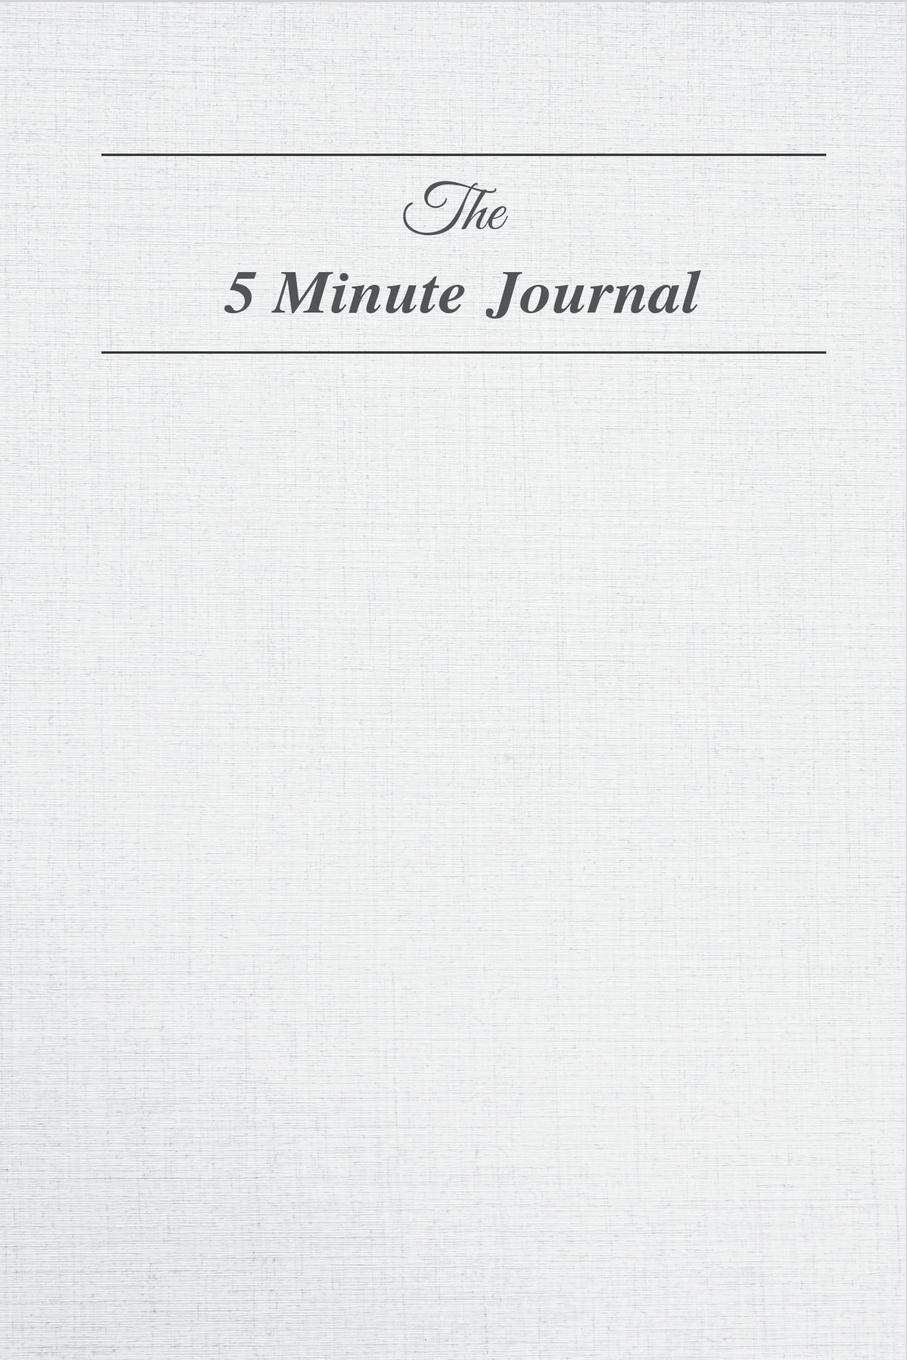 The 5 Minute Journal: Stress less and accomplish more with 5 minutes of Journaling a day